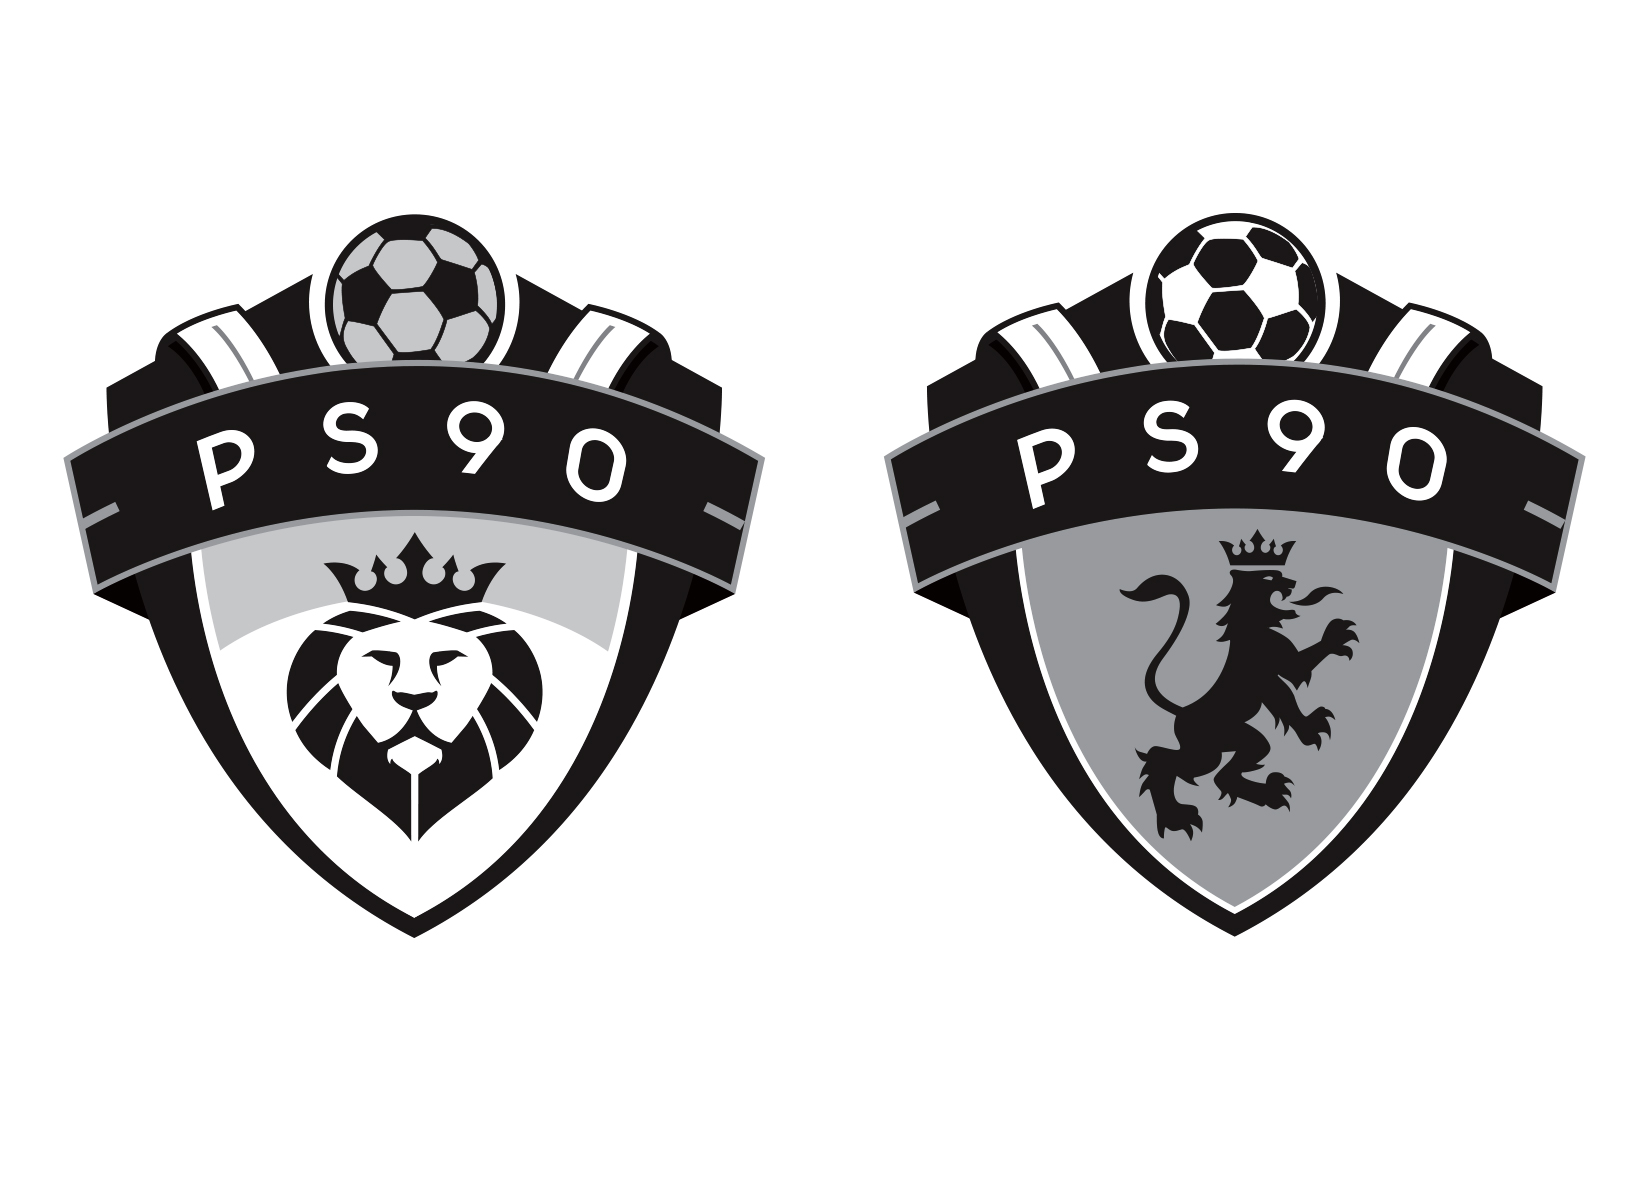 custom-soccer-crest-designs-for-ps90-soccer-2.jpg